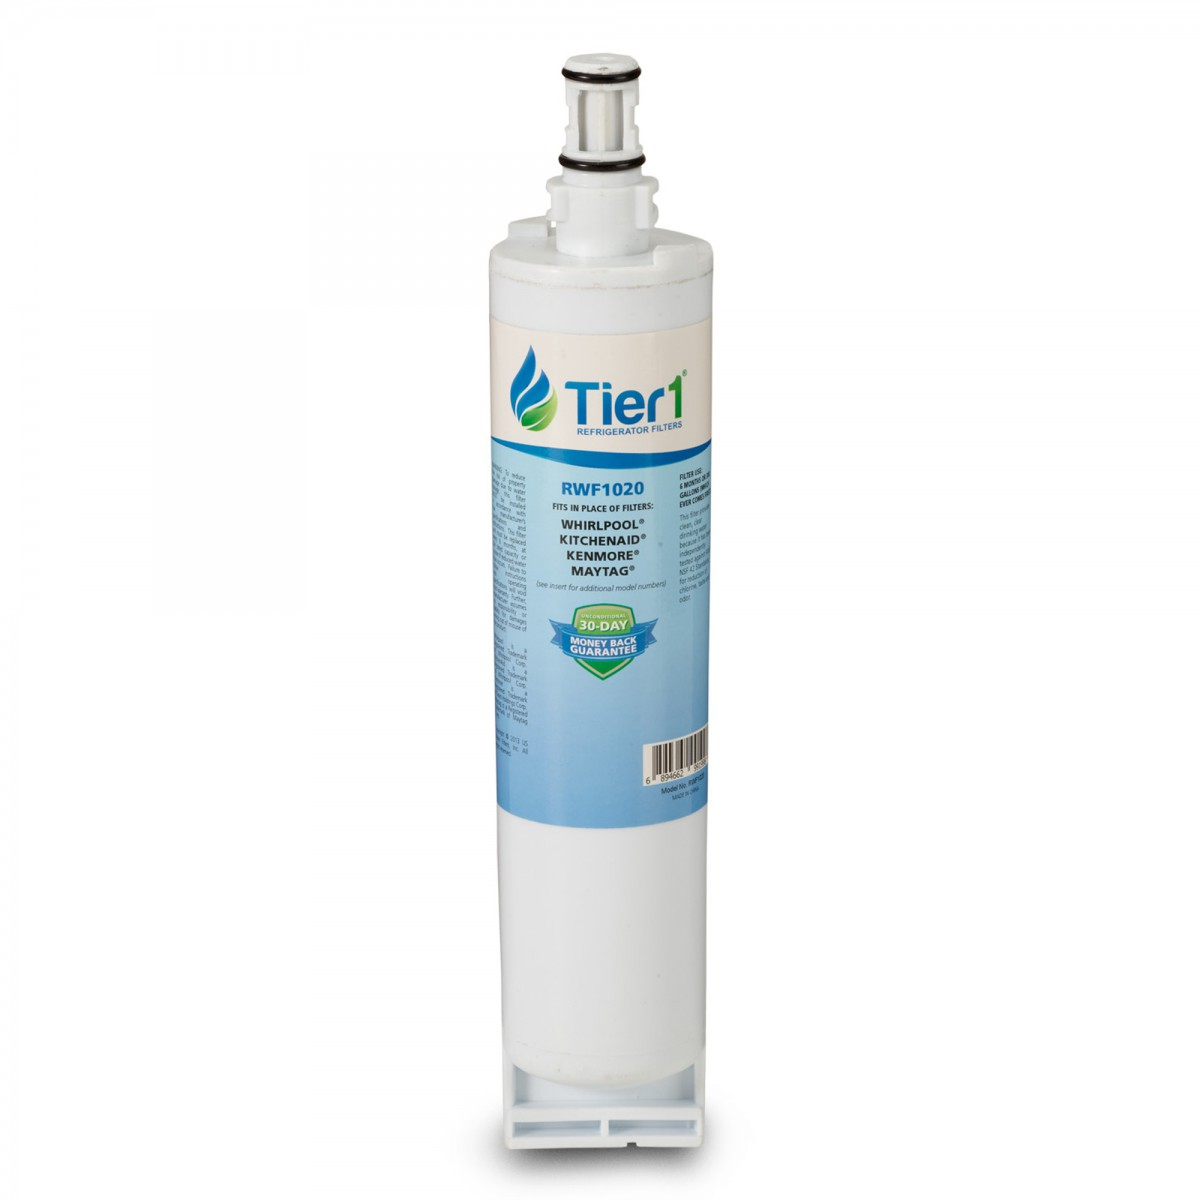 Wf L500 Whirlpool Refrigerator Water Filter Replacement By